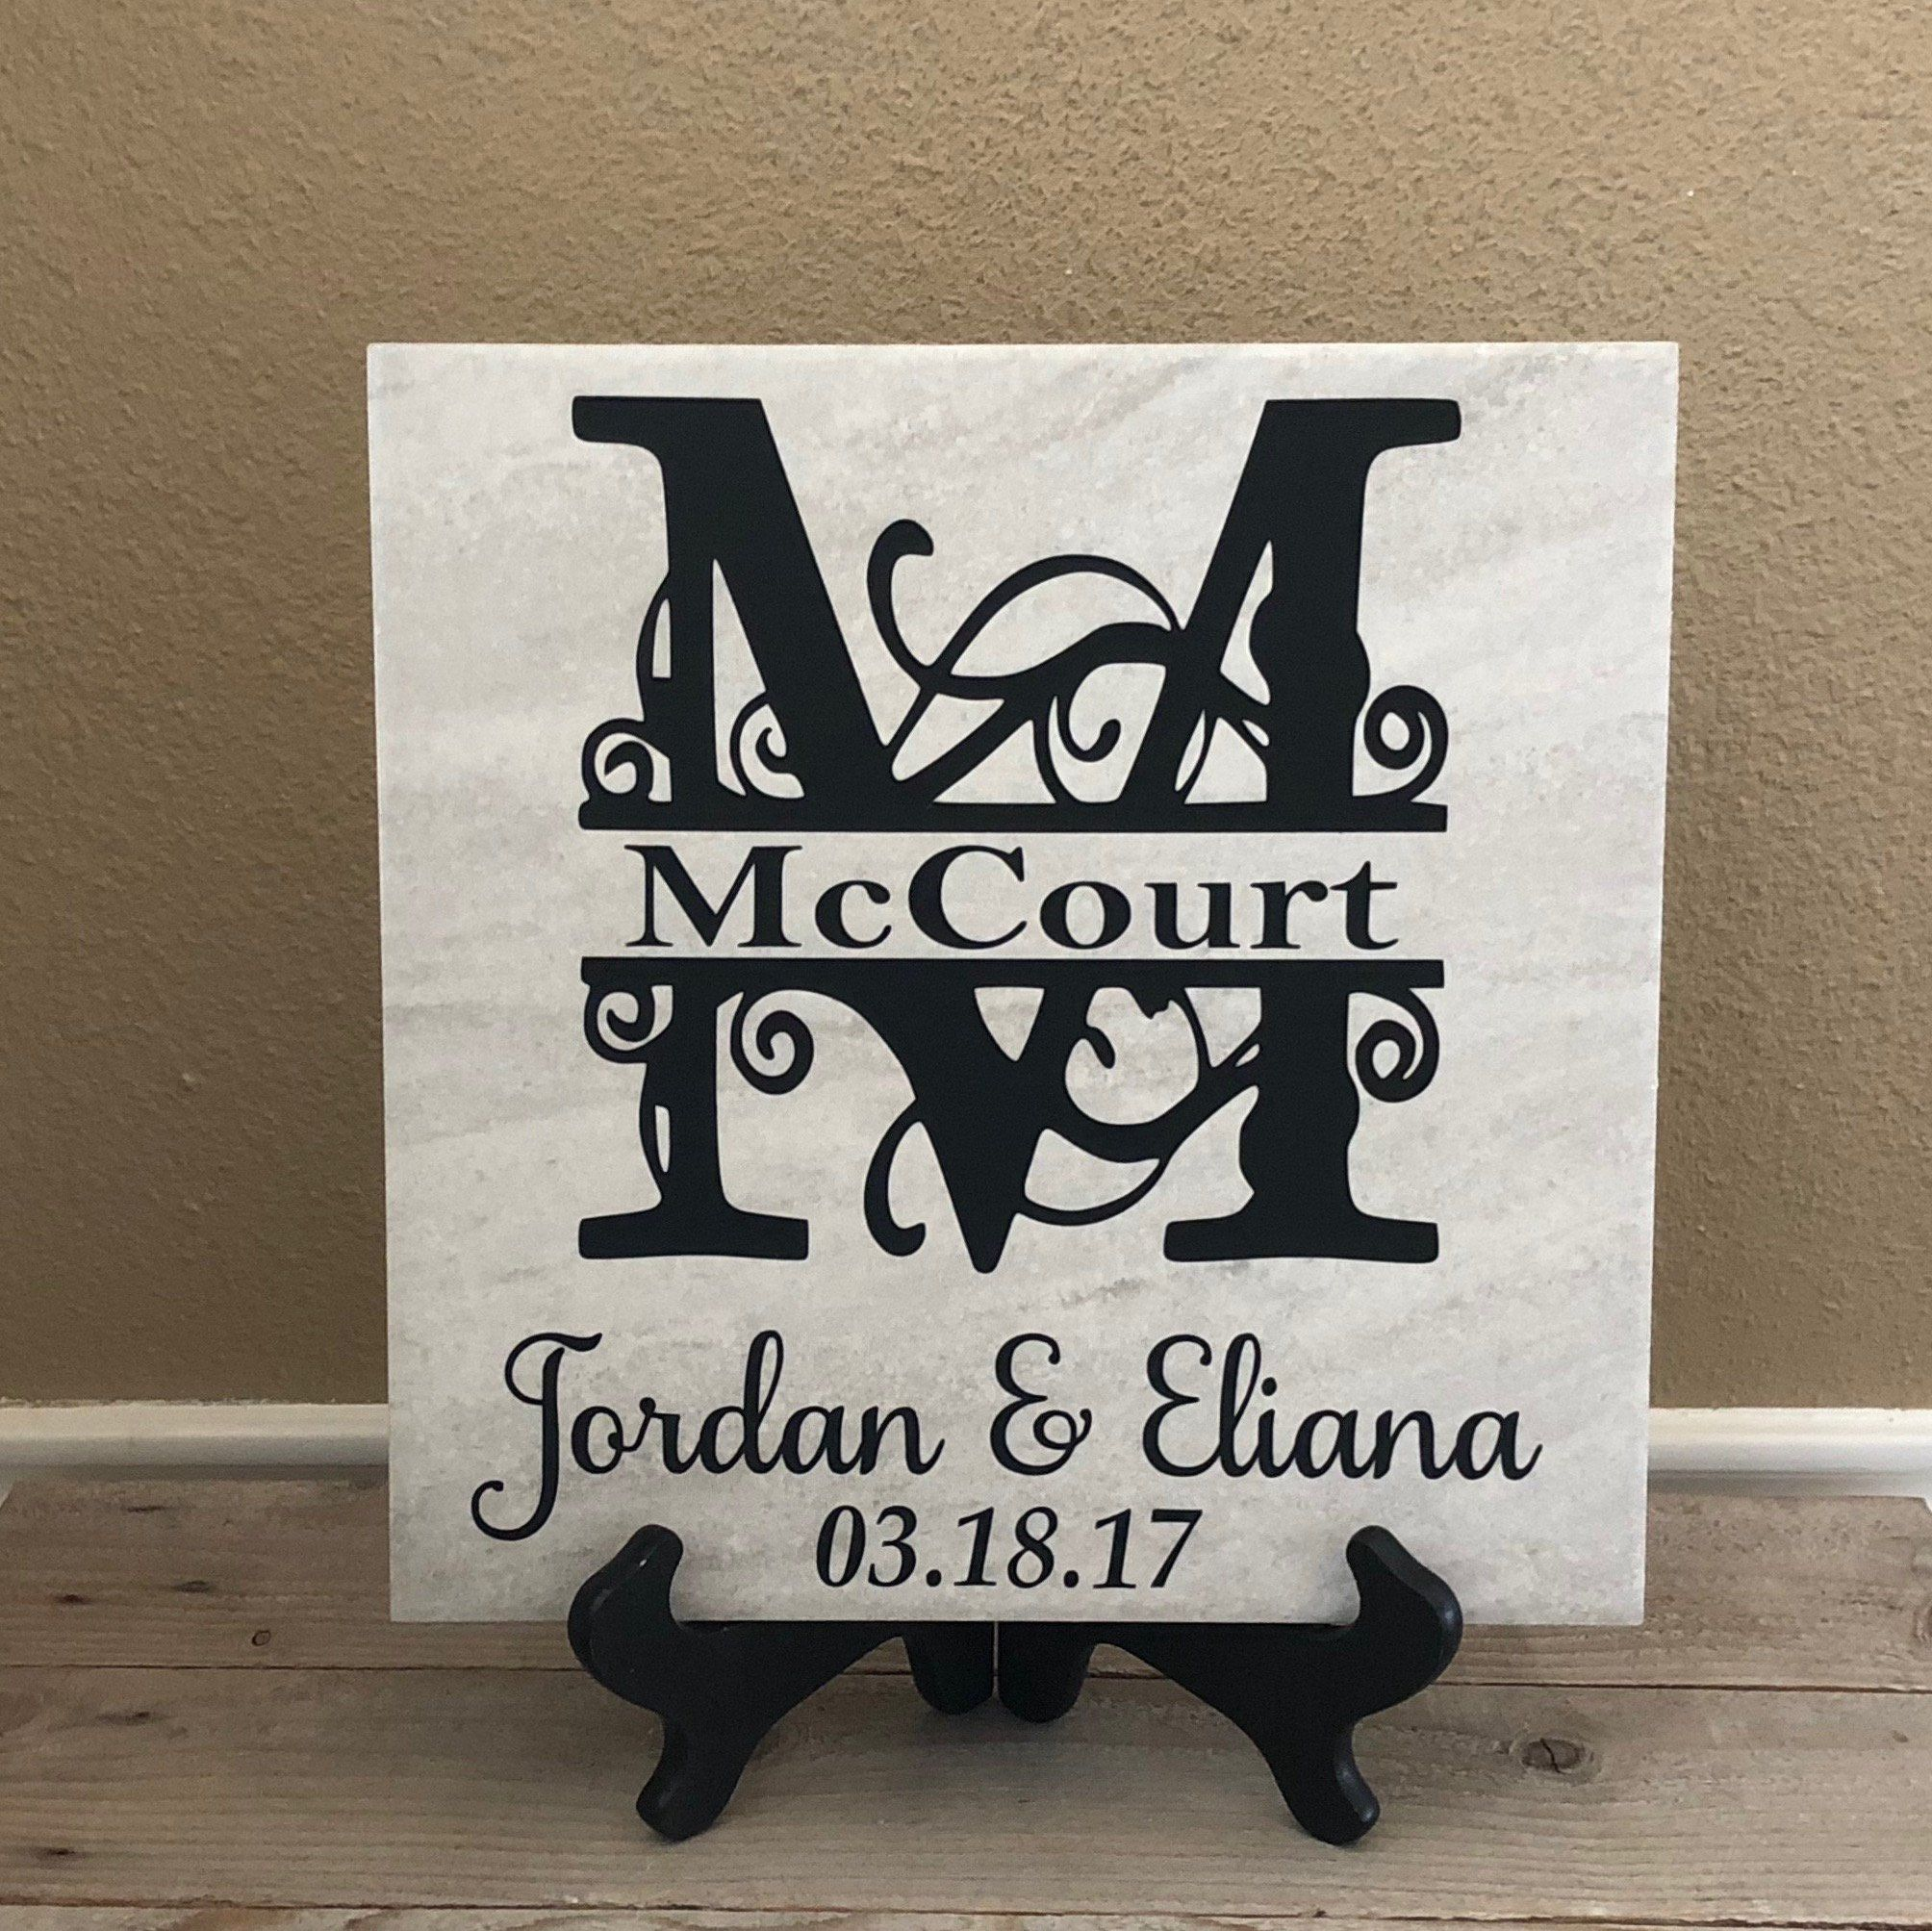 Wedding Gift Wedding Gift Personalized Gifts For Couple Gift Ideas Gifts For Bride Gift For Parents Wedding Signs Wedding Last Name In 2020 Personalized Wedding Gifts Newlywed Gifts Personalized Couple Gifts